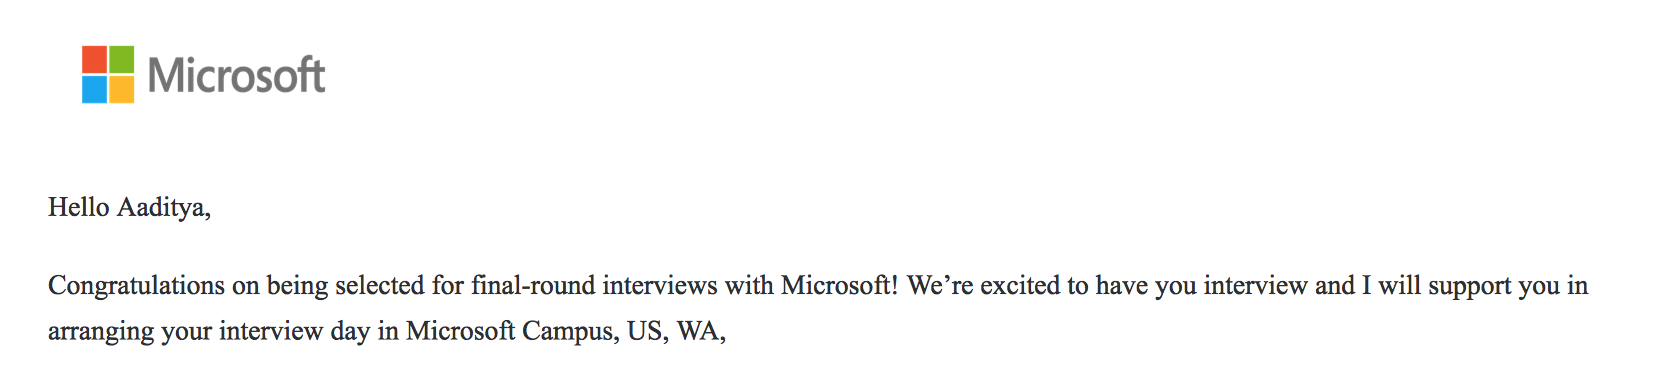 Why I wanted to Intern at Microsoft as a designer, and how I